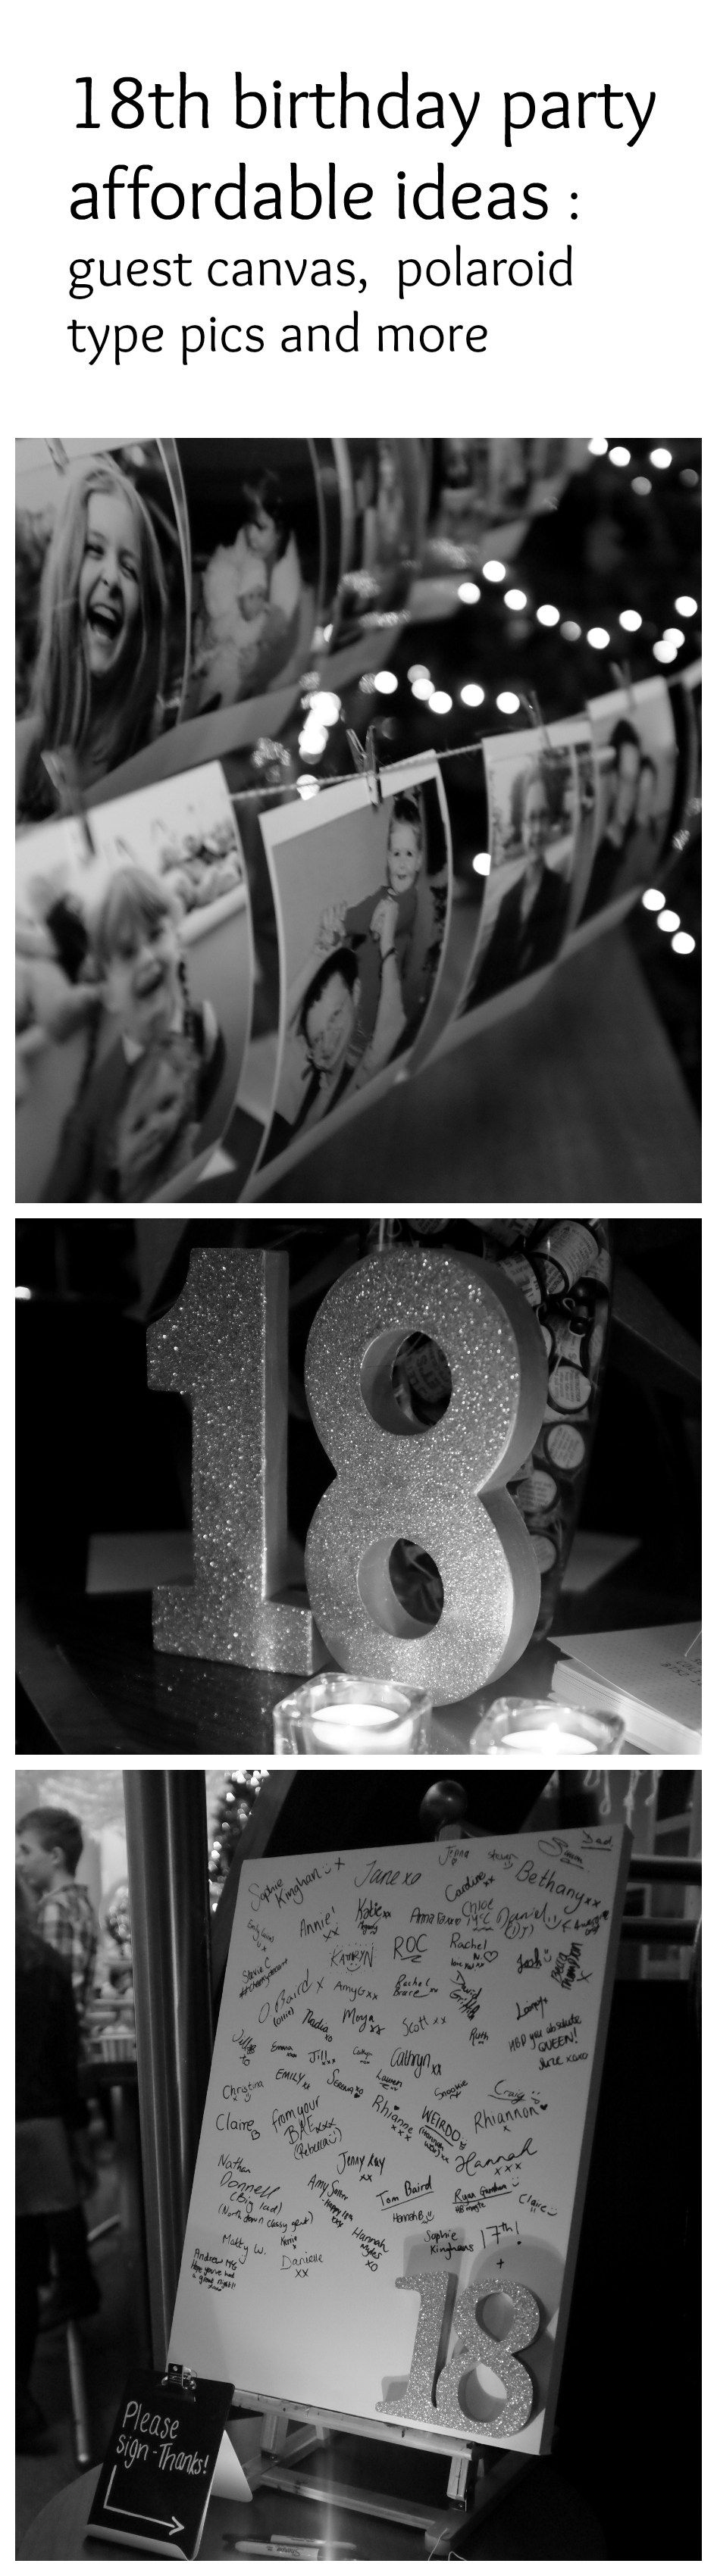 Some creative ideas for planning an 18th birthday party | 18th ...